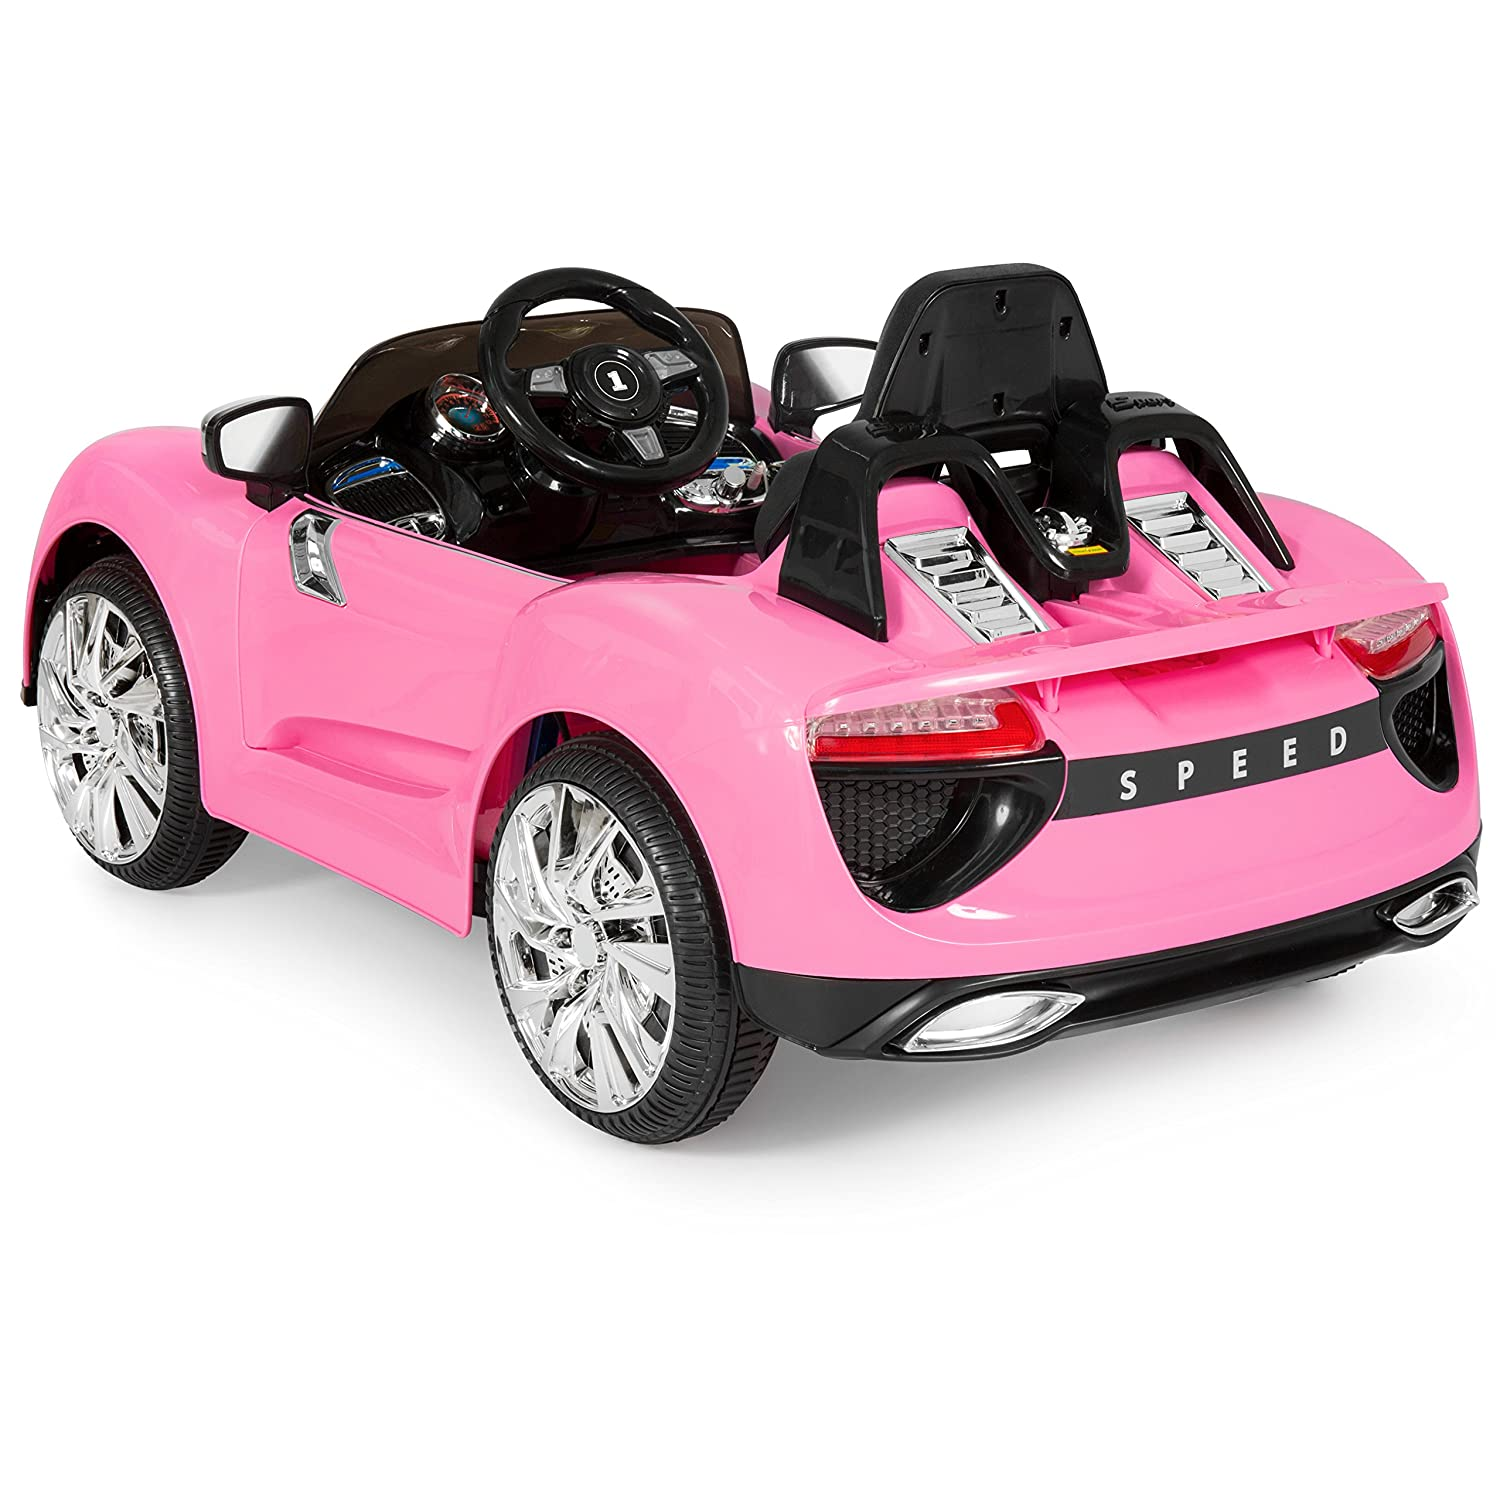 Power Wheels Smart Car Parts Best Choice Products 12v Kids Battery Powered Remote Control Electric Rc Ride On W 2 Speeds Led Lights Mp3 Aux Pink Toys Games